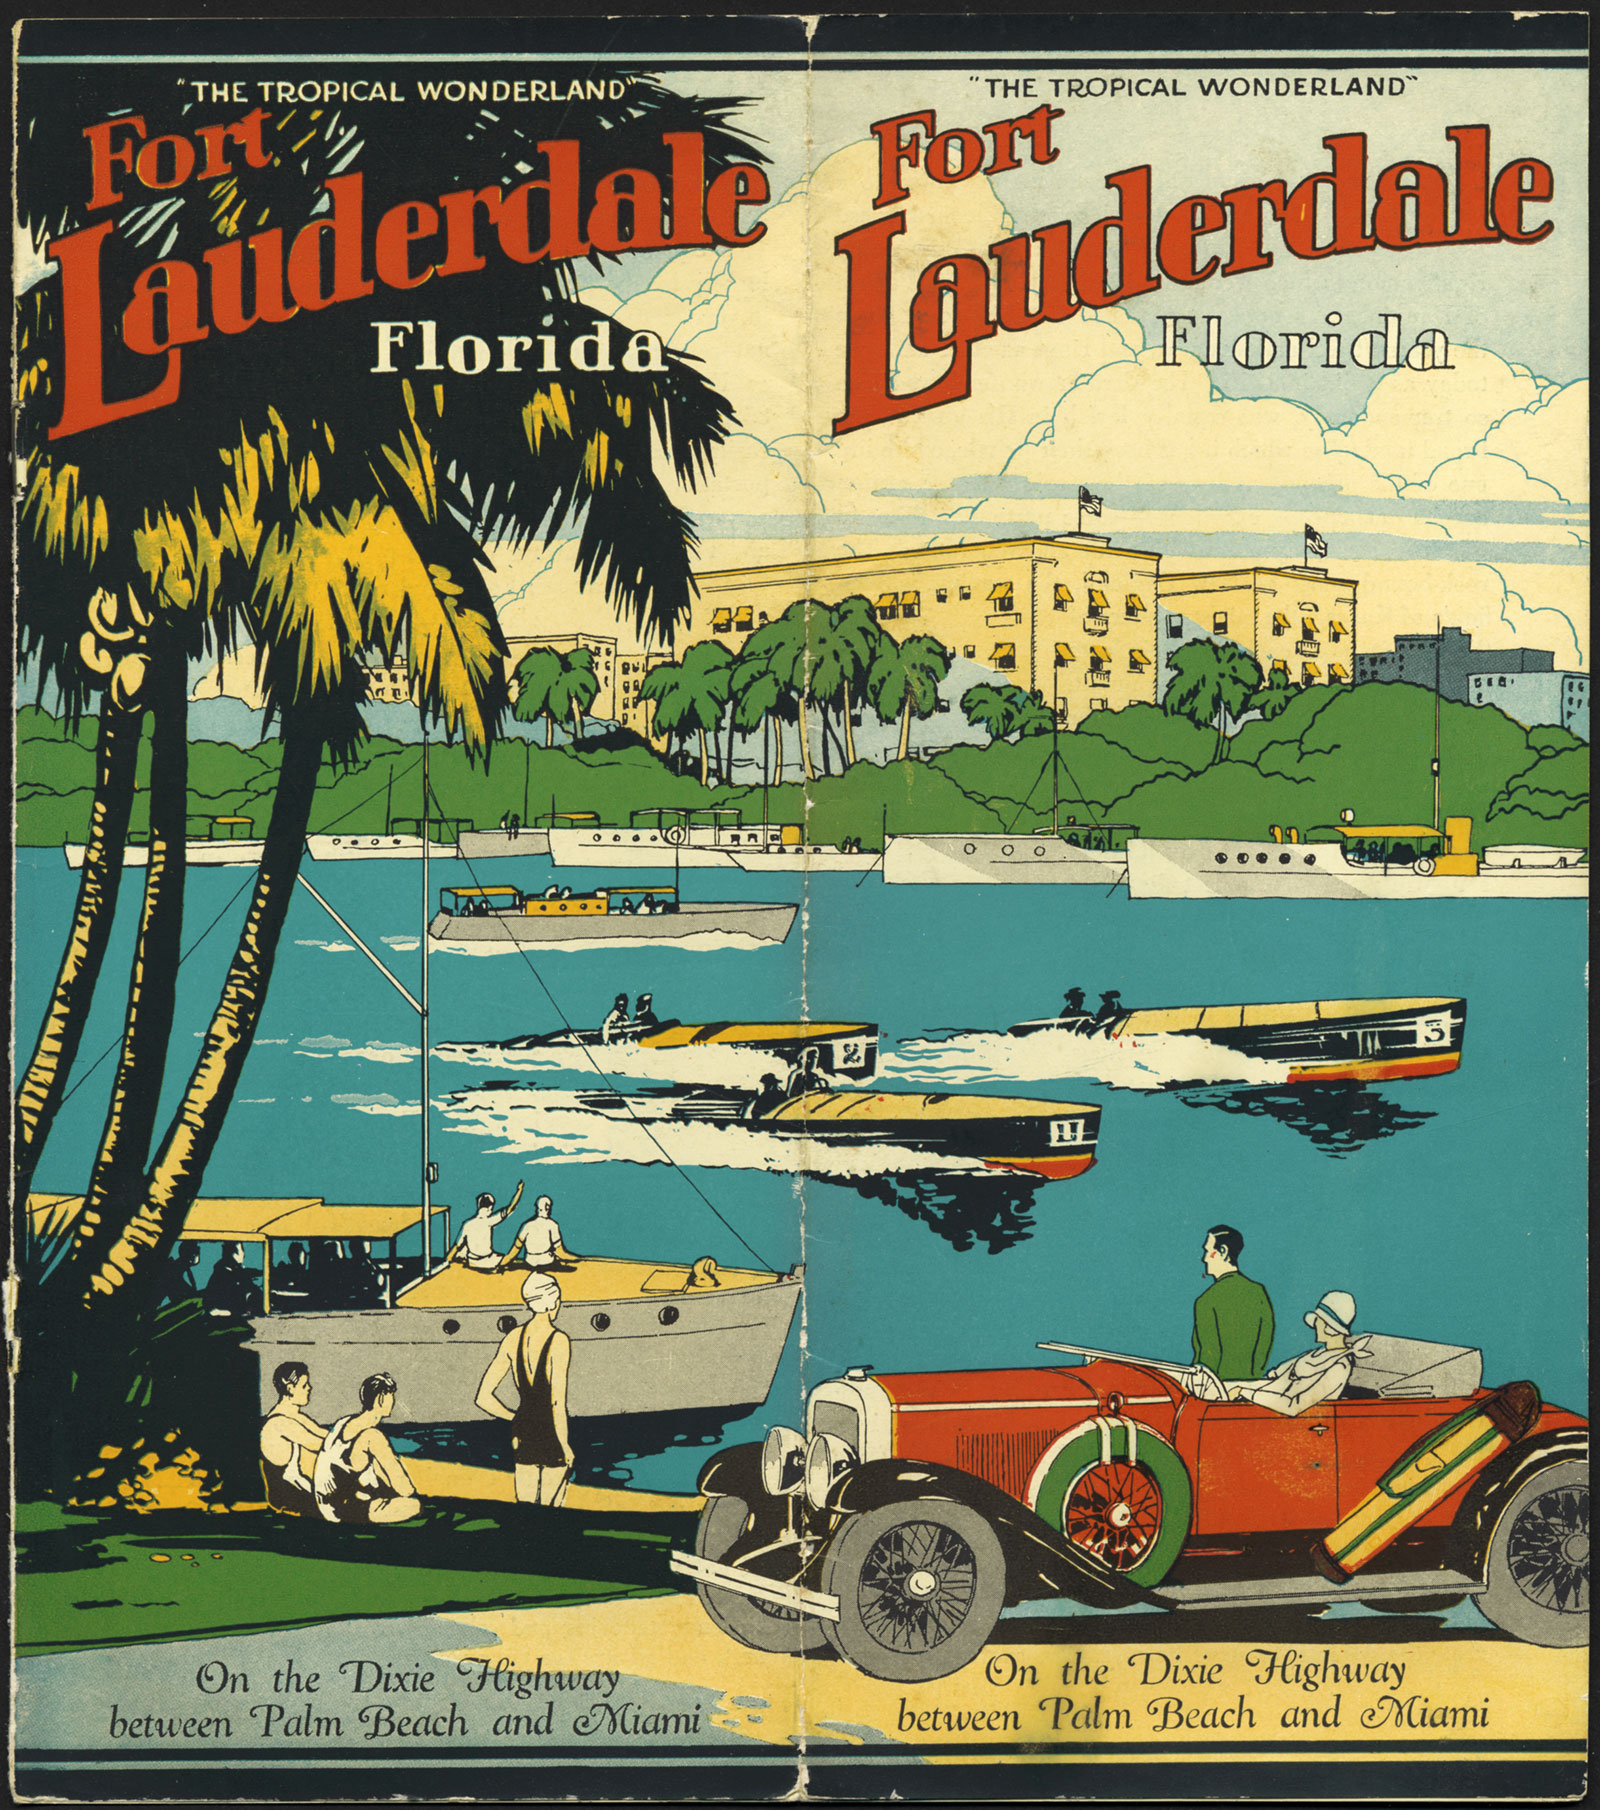 Fort Lauderdale brochure